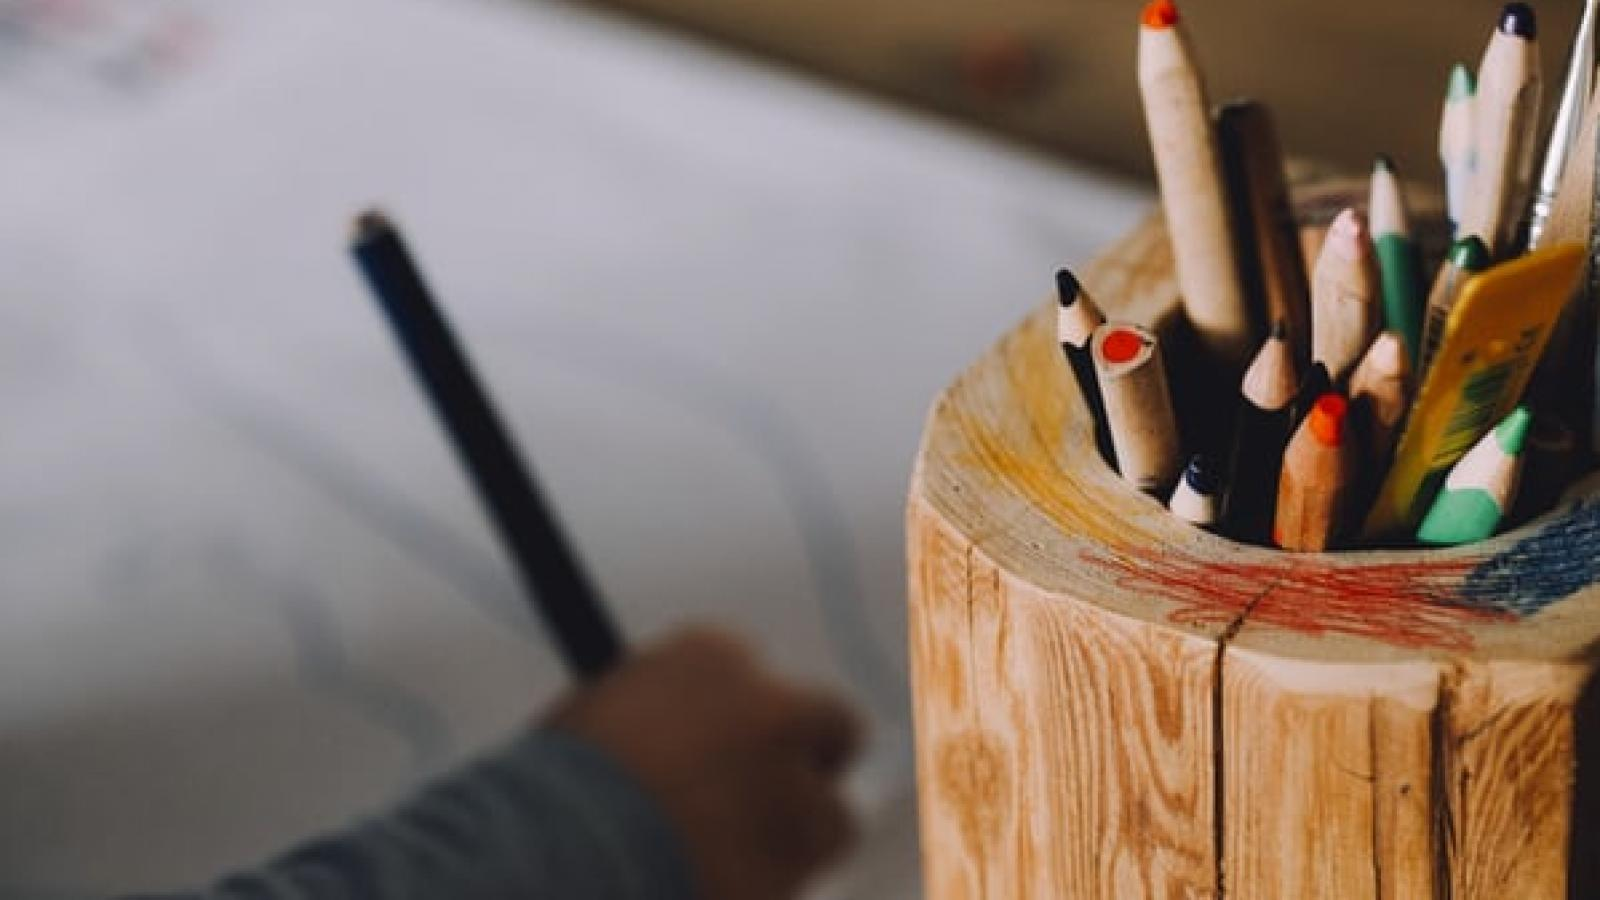 A carton of colouring pencils sits to the right of a child's hand drawing